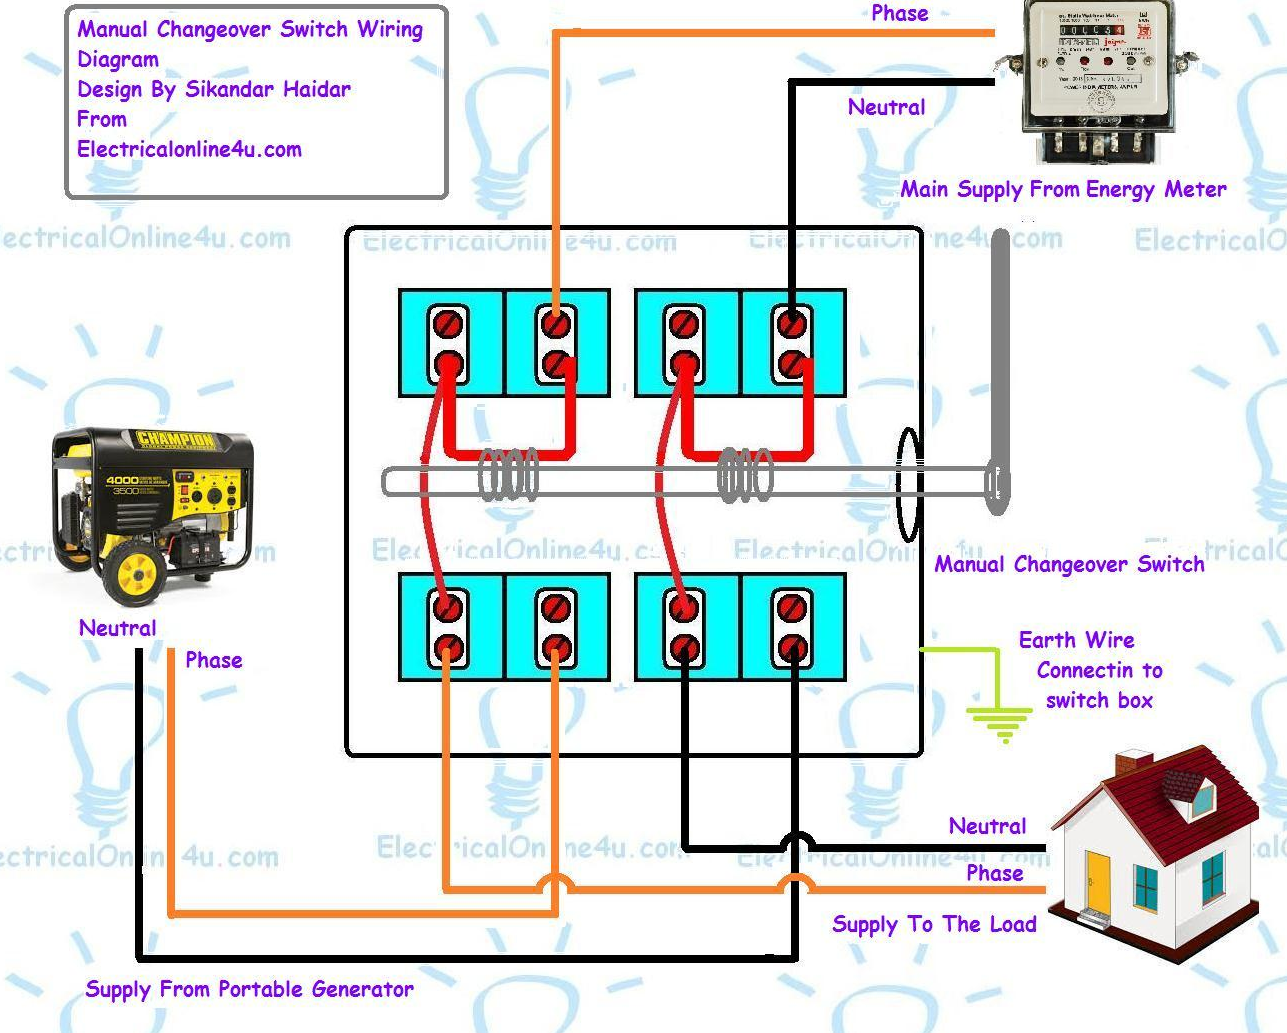 manual%2Bchangeover%2Bswitch%2Bwiring%2Bdiagram manual changeover switch wiring diagram for portable generator electrical switch wiring diagram at reclaimingppi.co